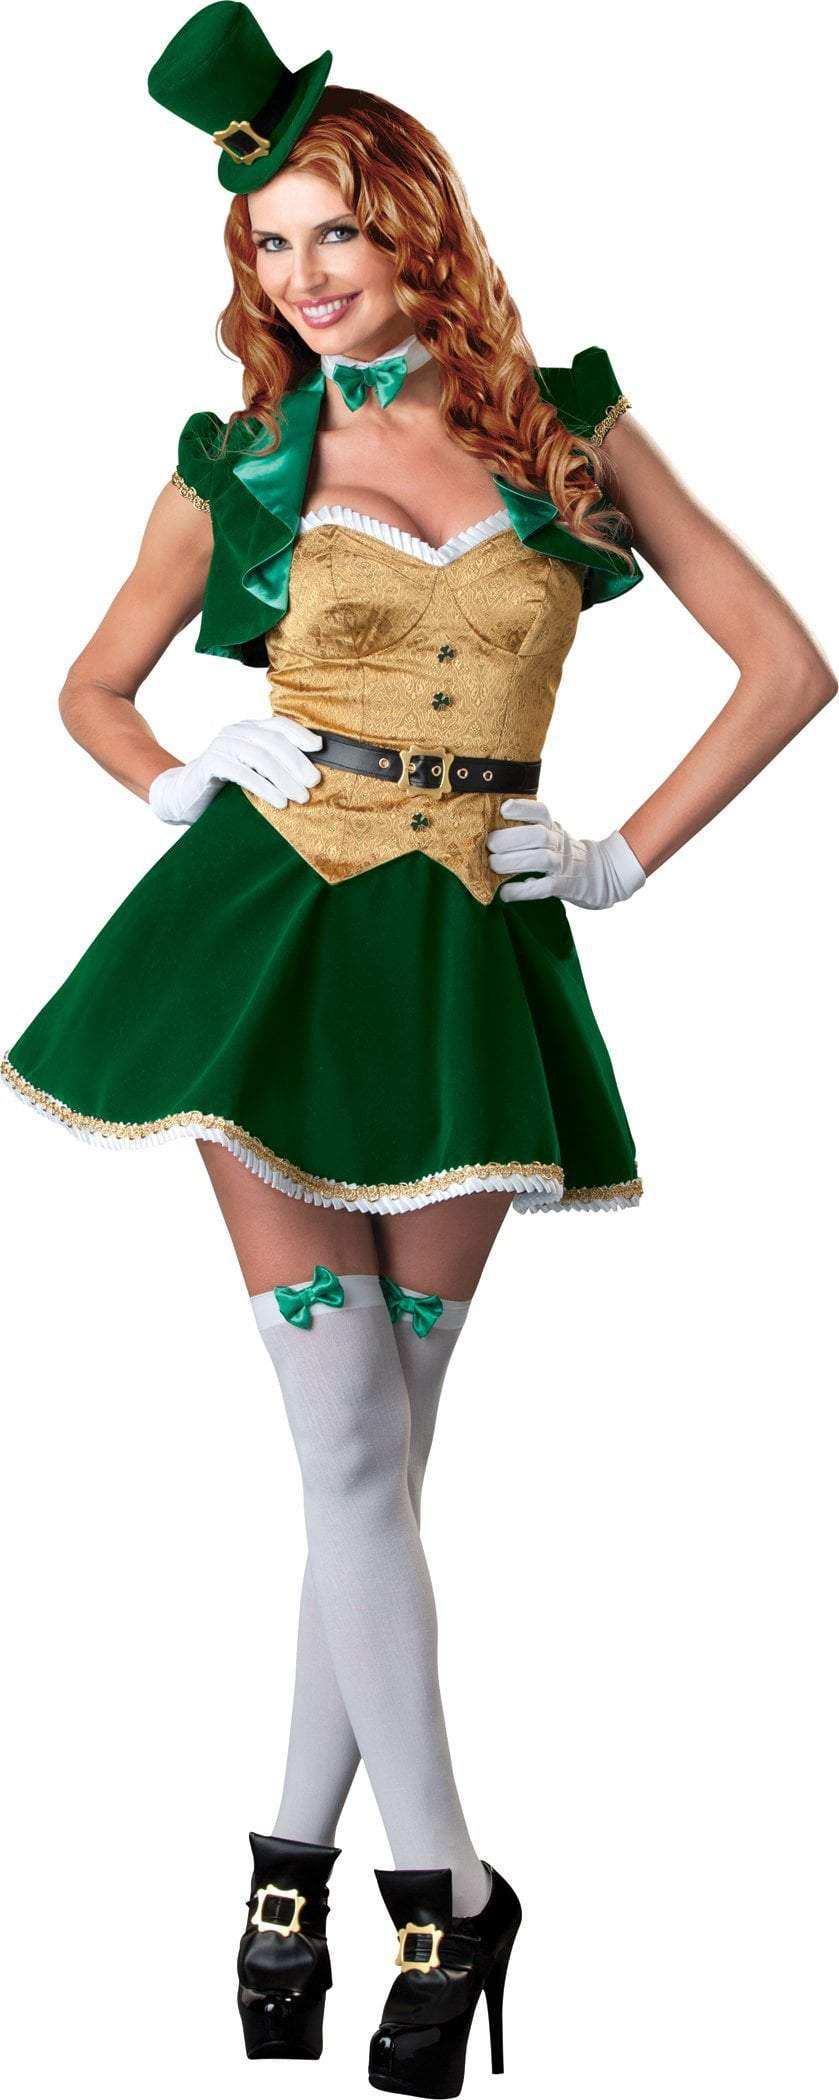 InCharacter Costumes LARGE Adult Lucky Lass Deluxe Costume